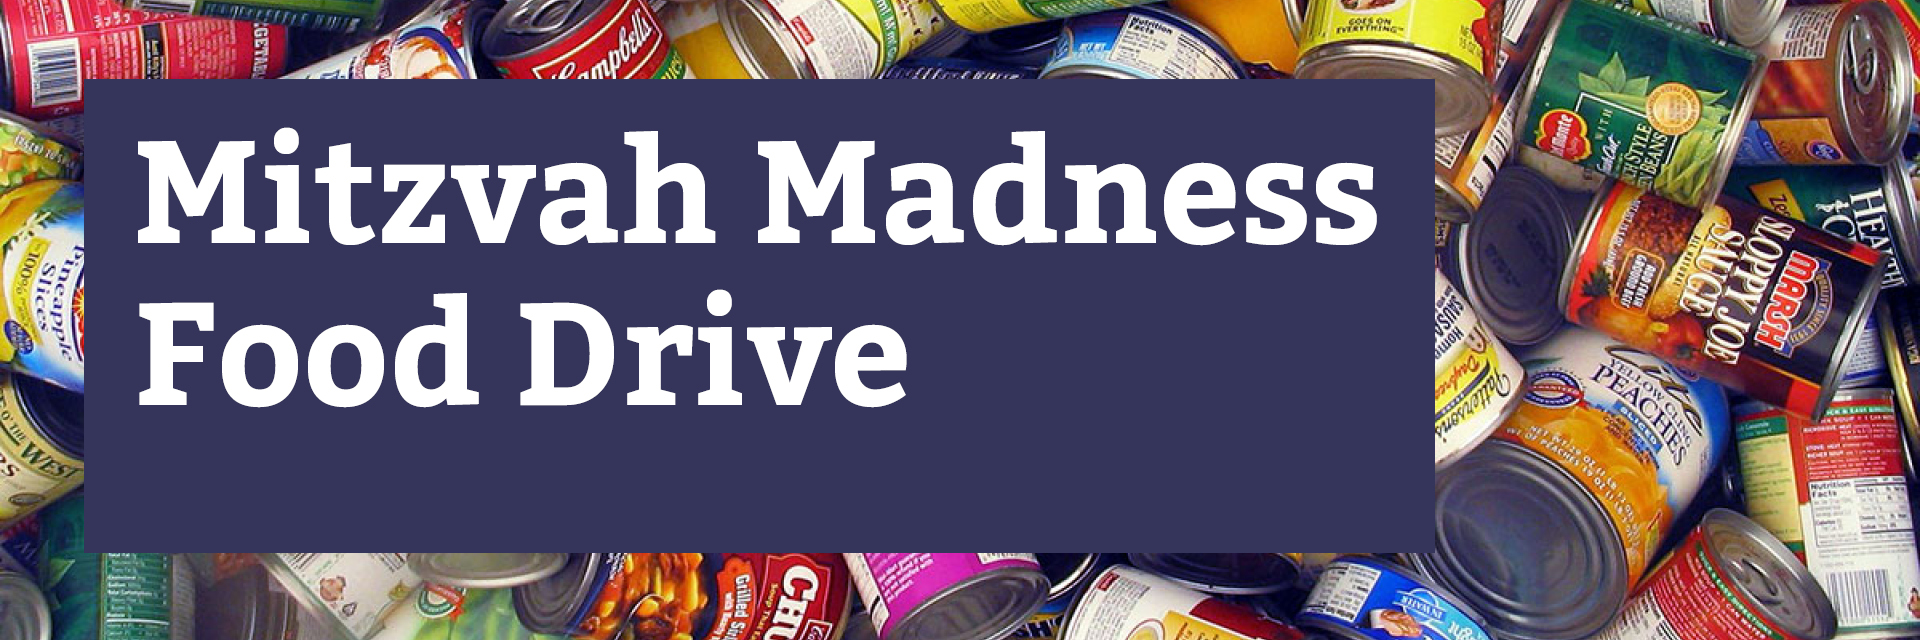 "<a href=""https://www.congkti.org/mitzvah-madness-food-drive.html""